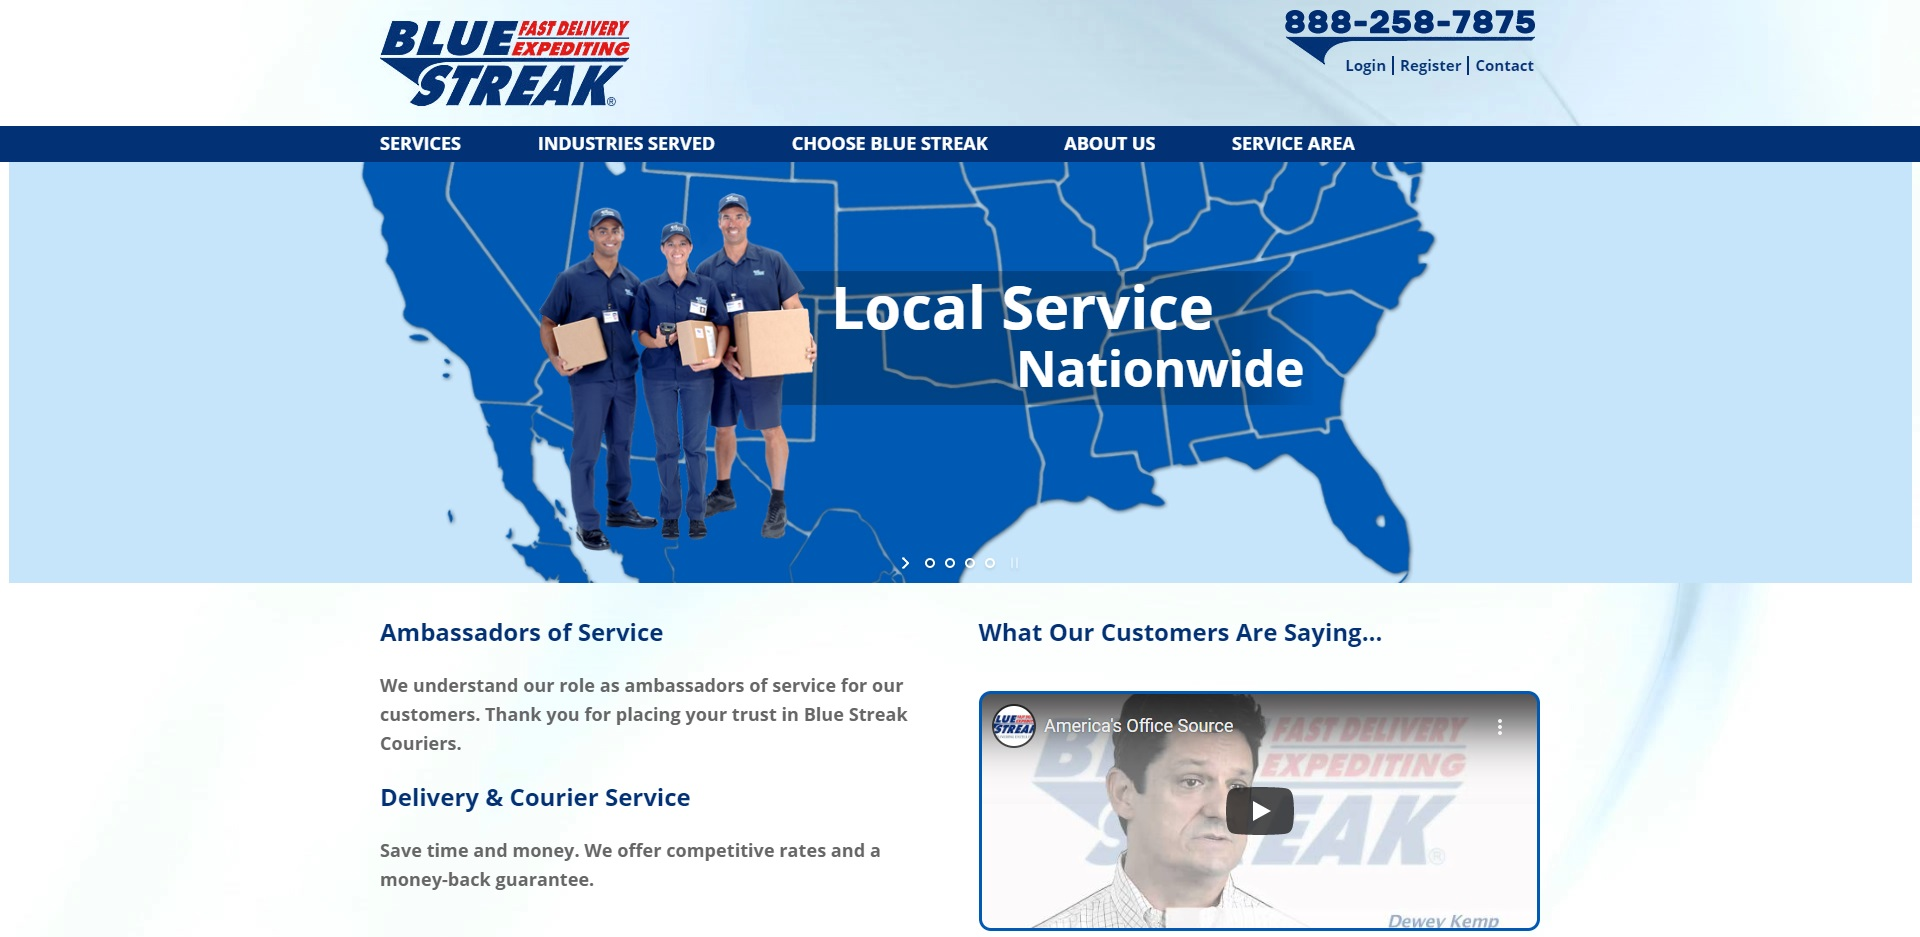 The Best Courier Services in Jacksonville